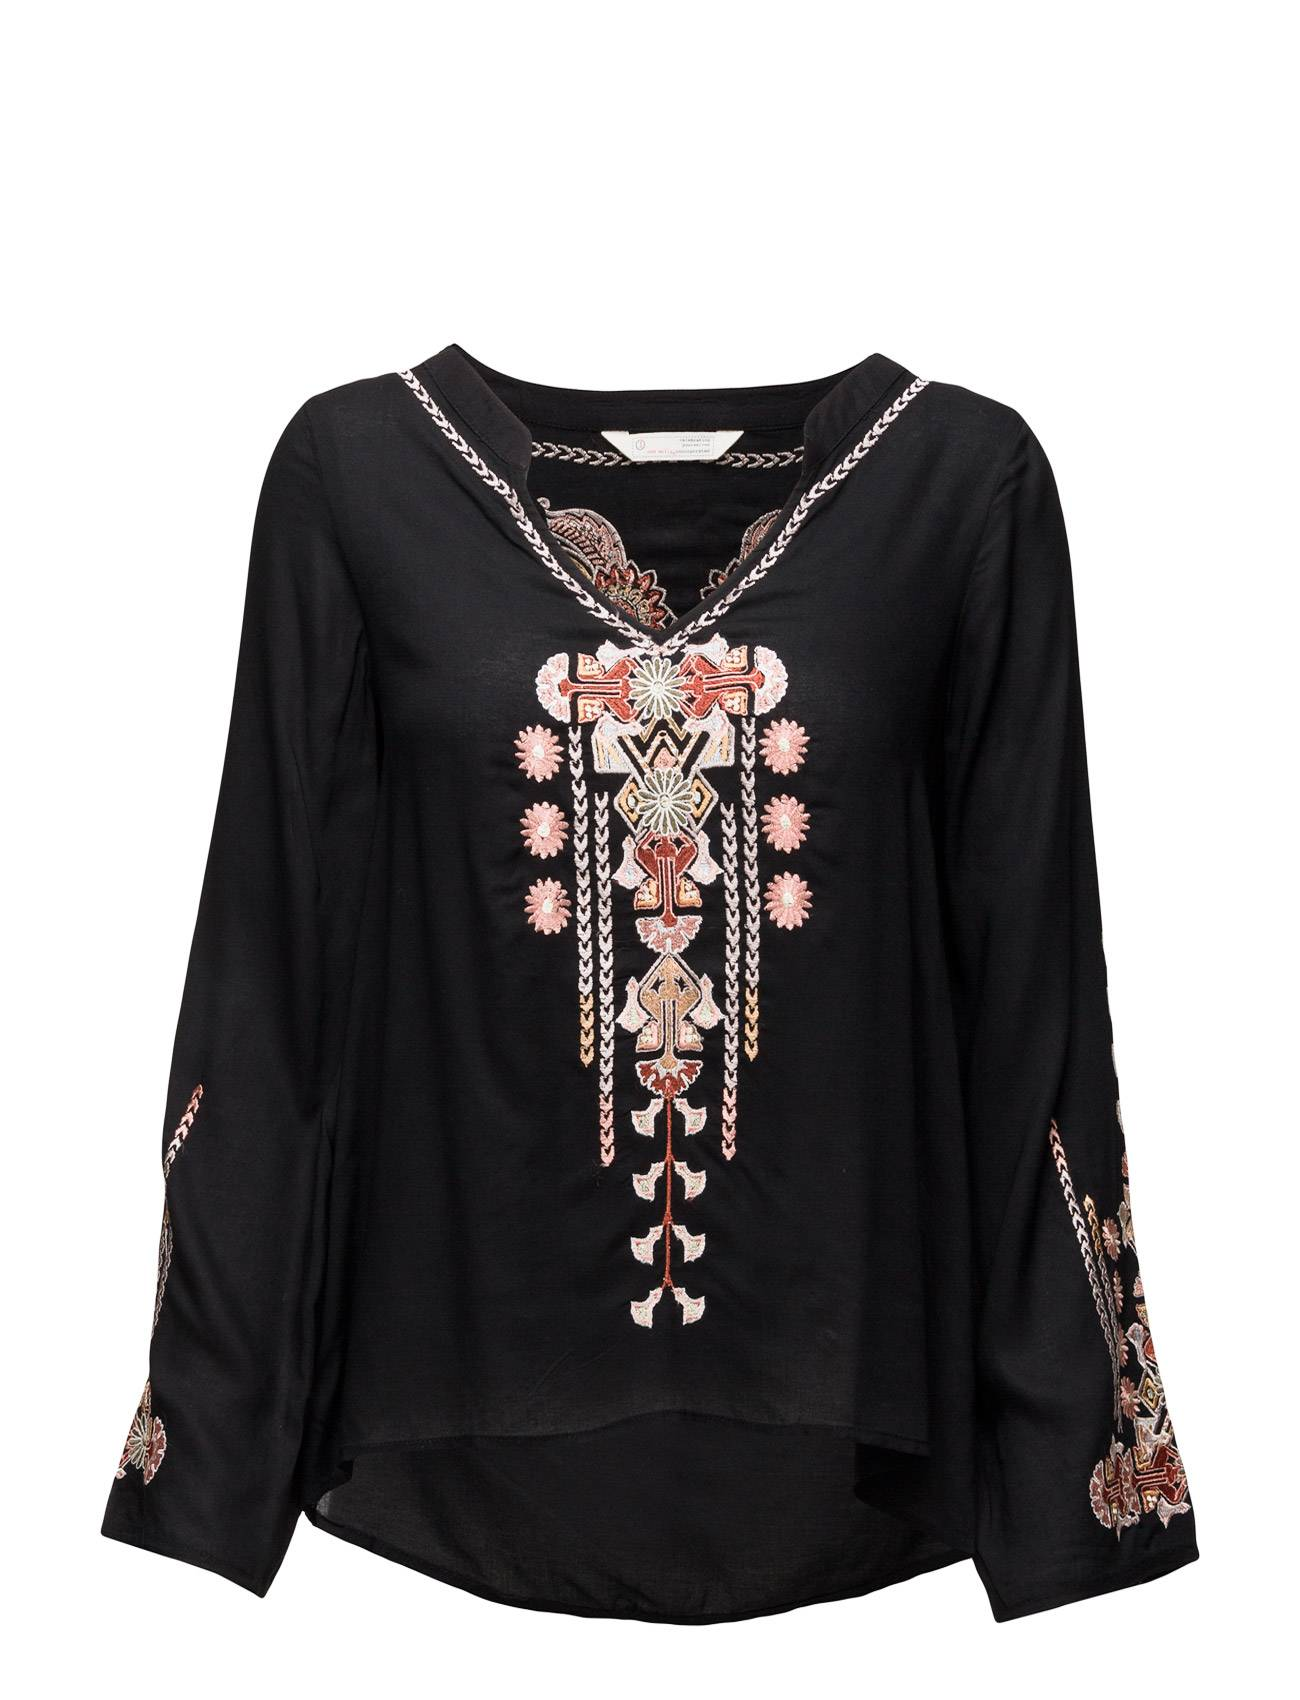 ODD MOLLY Ticket To Ride L/S Blouse